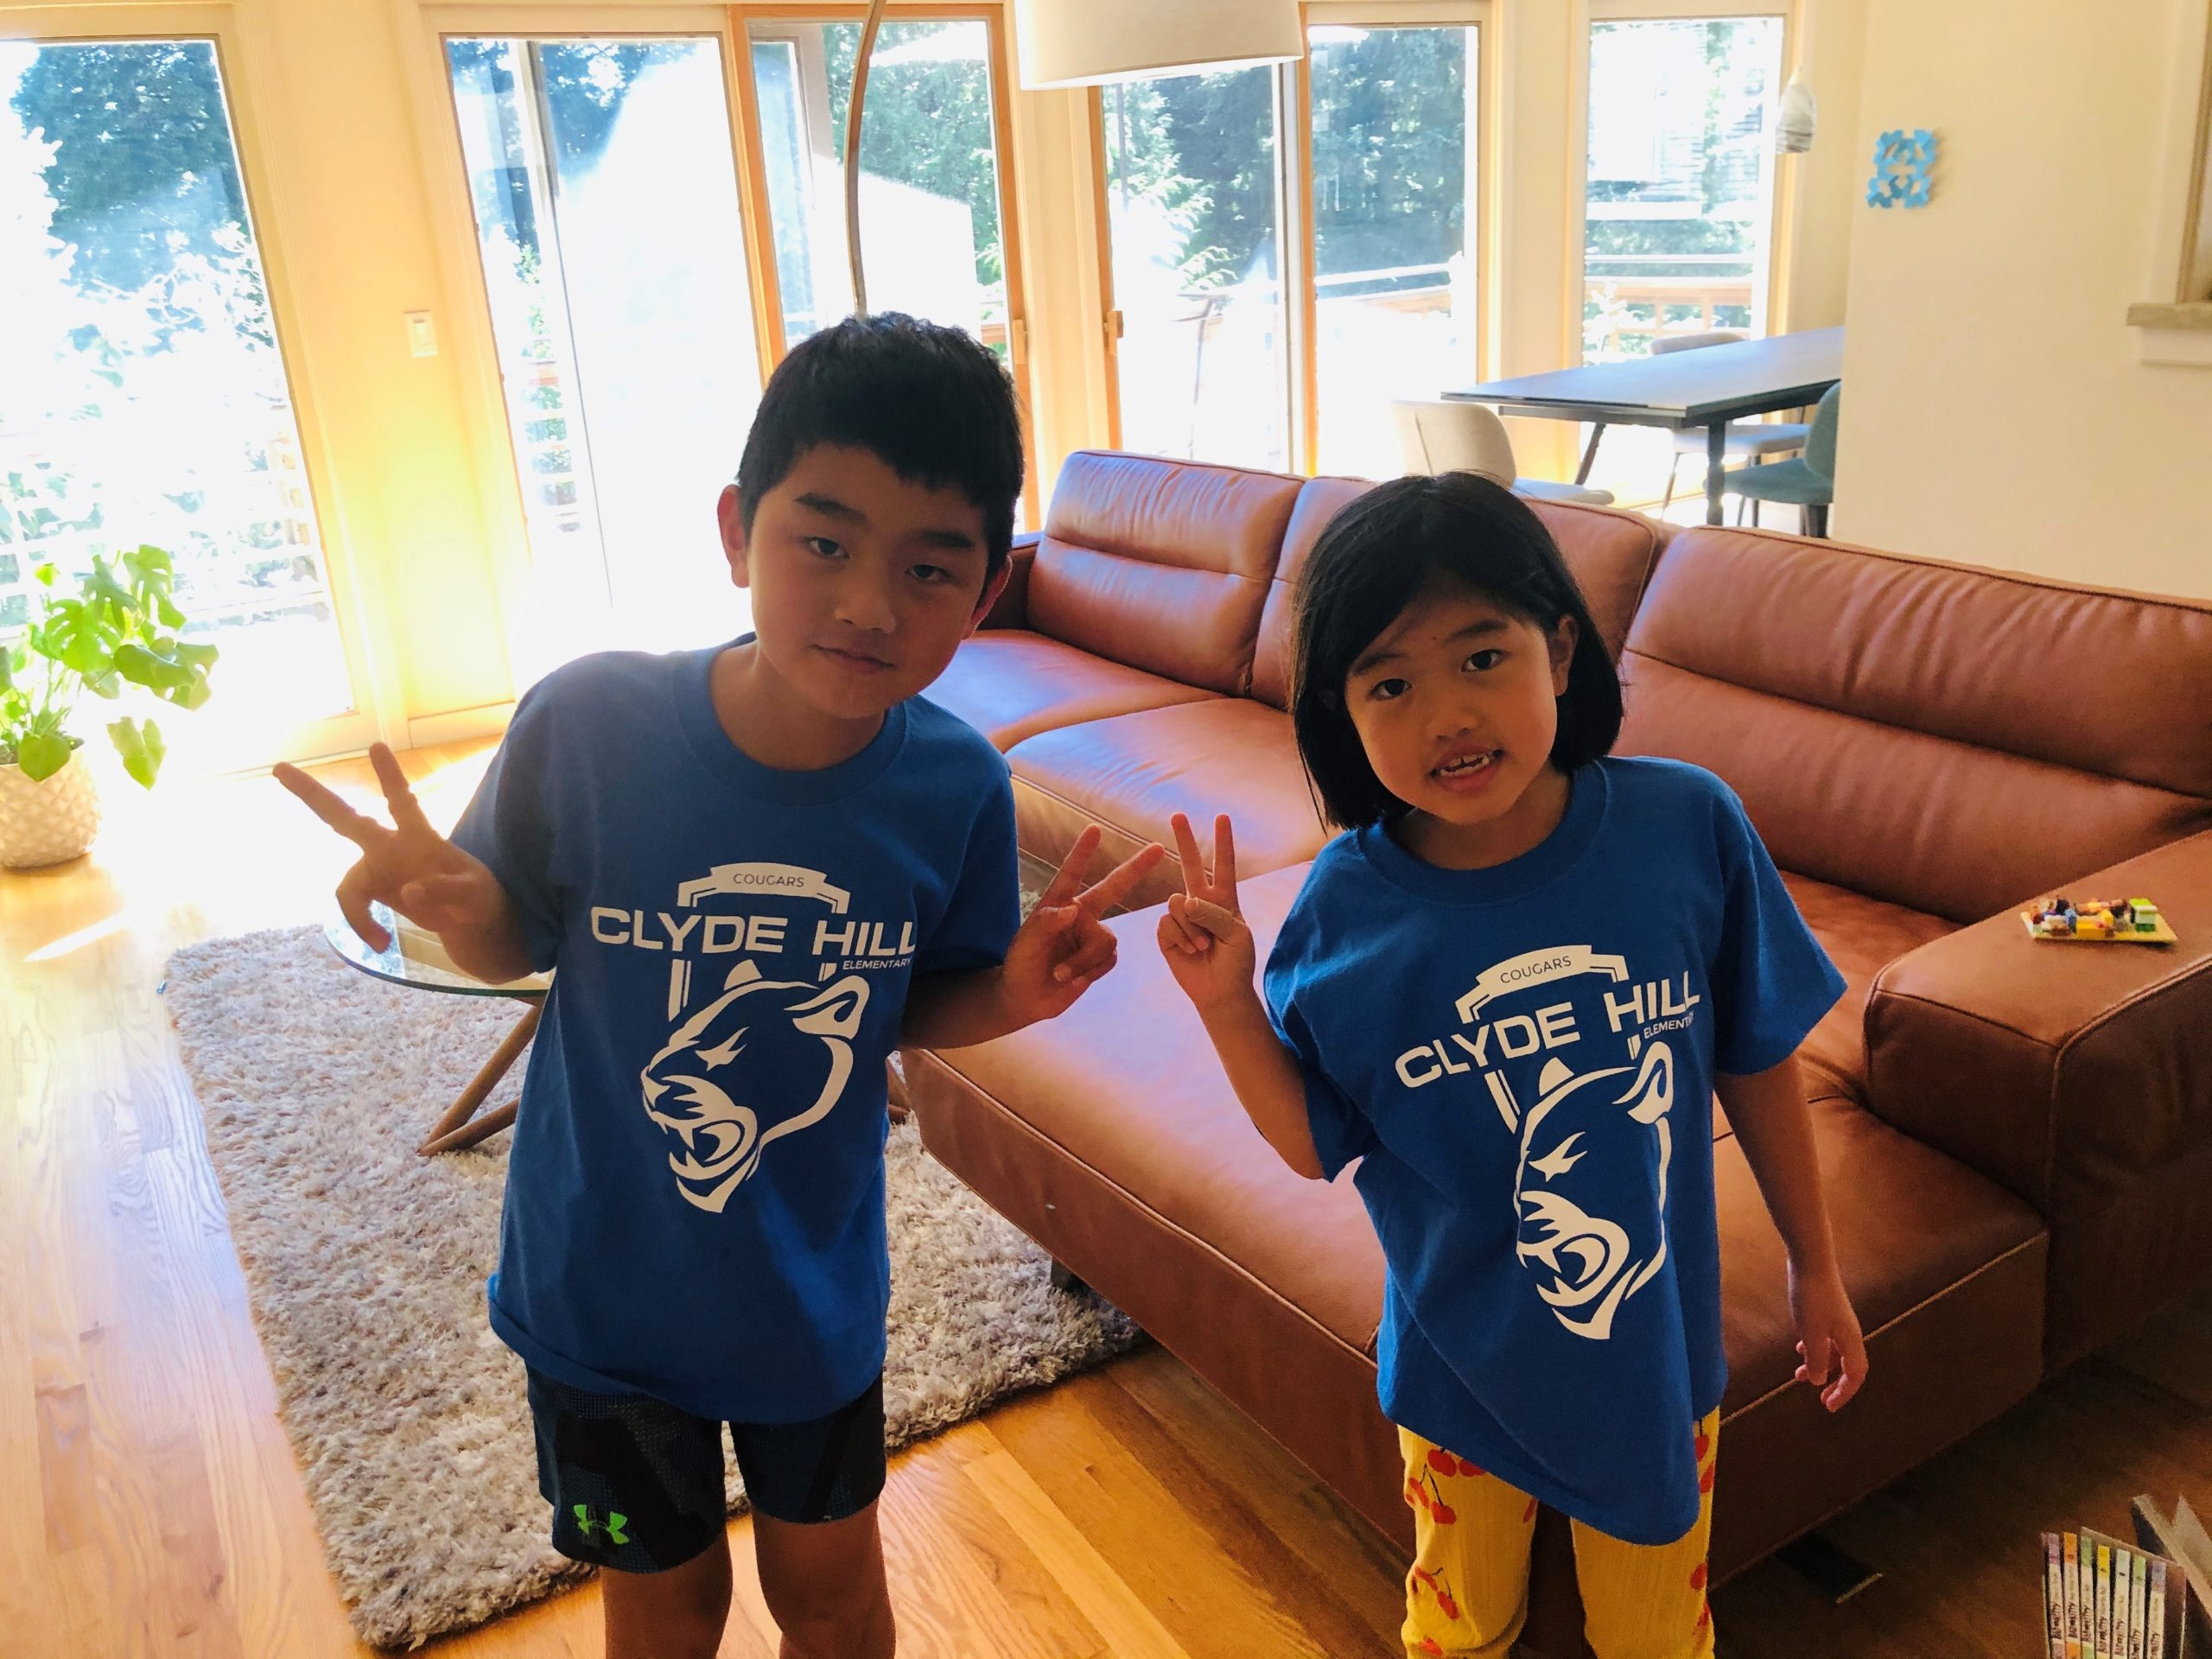 student wearing clyde hill elementary shirts